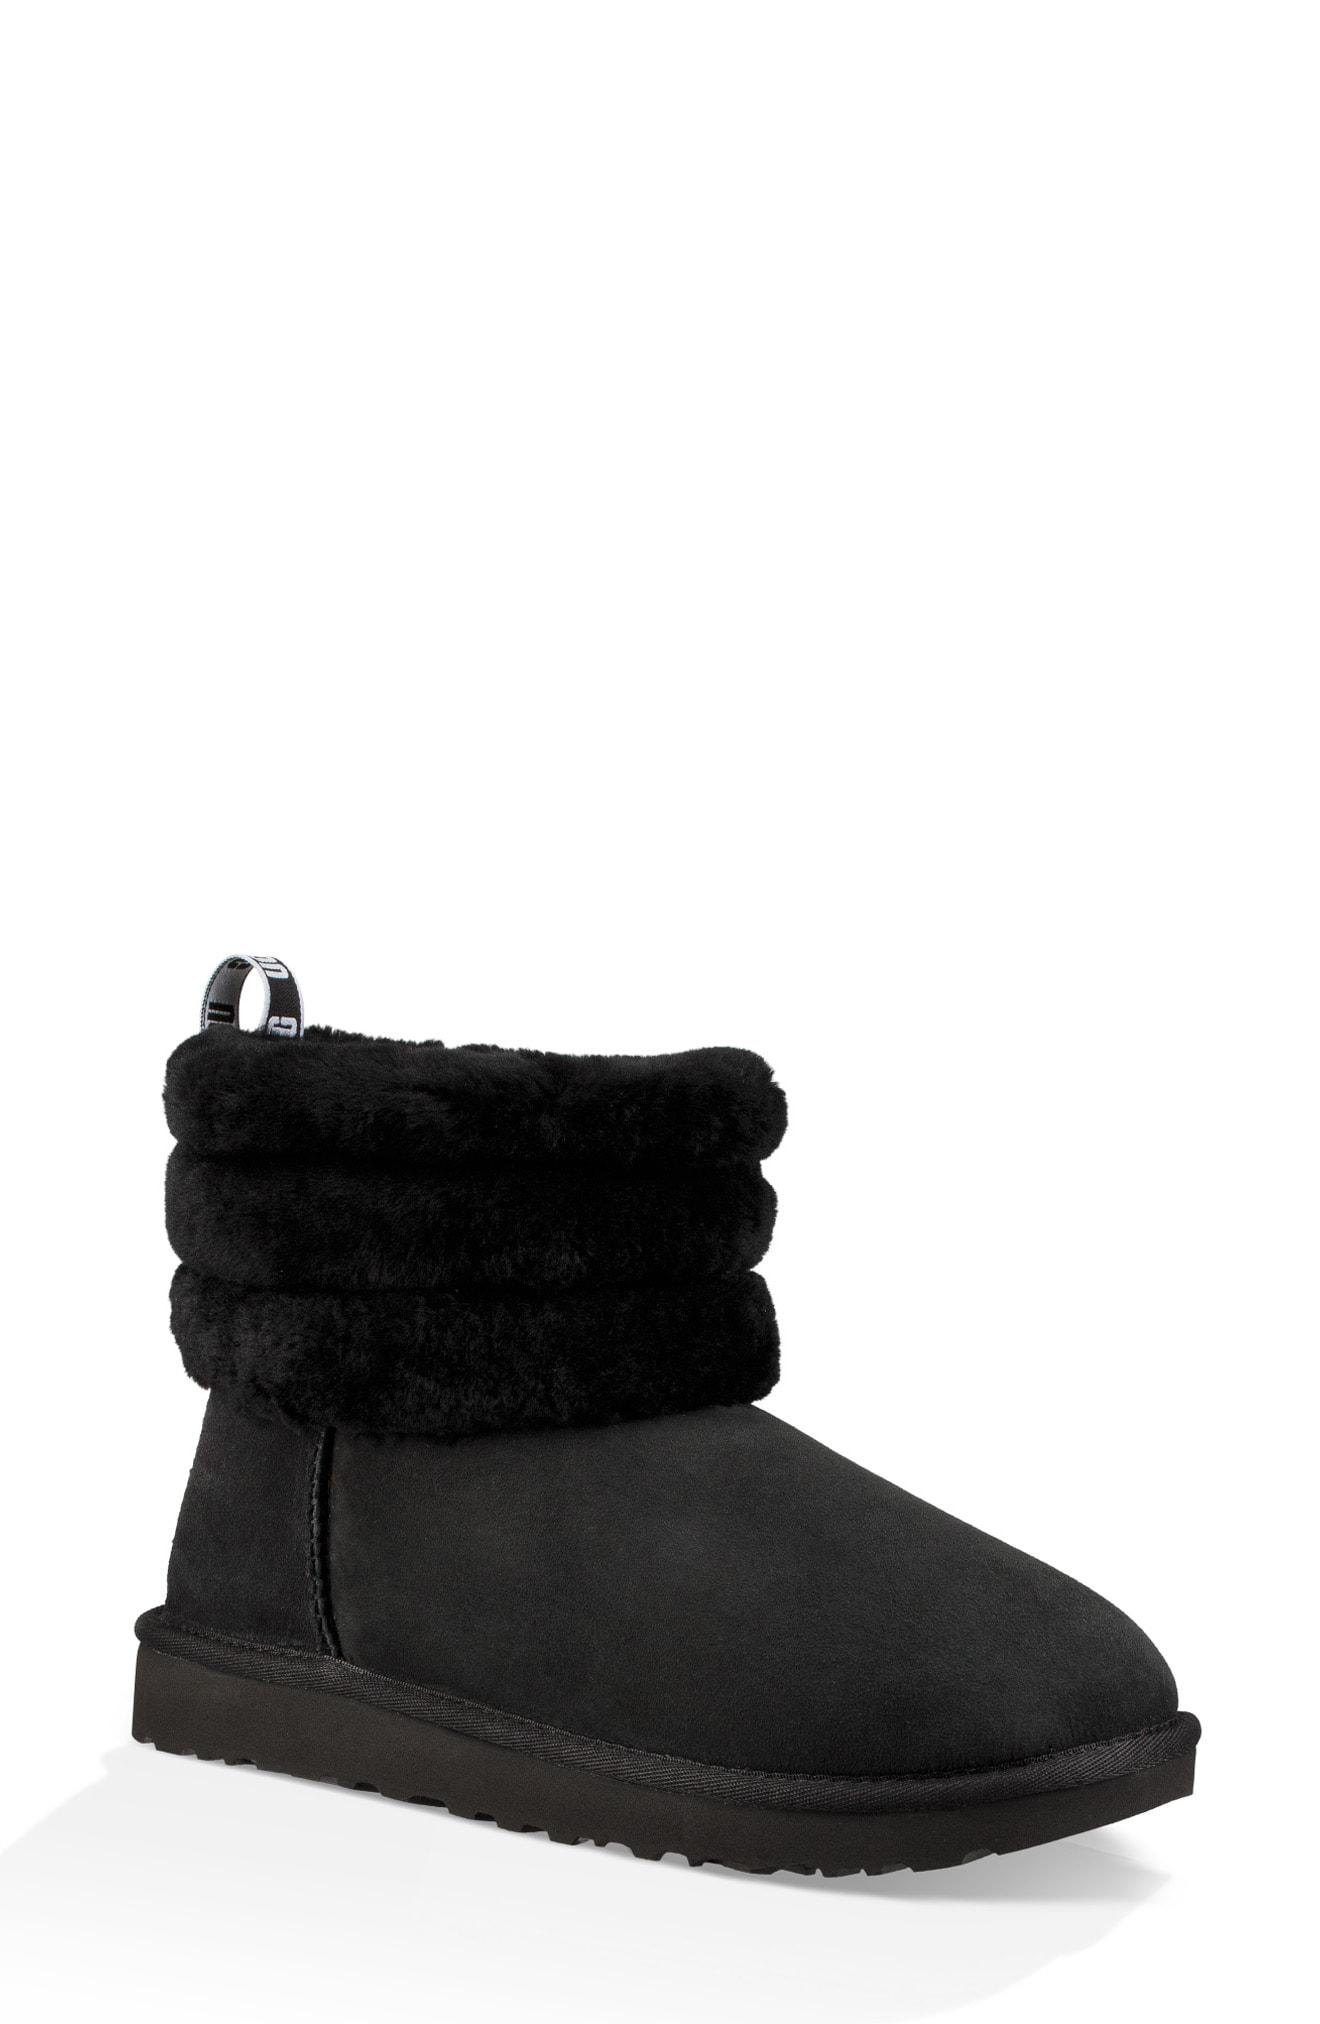 9c784b251ec Lyst - UGG Ugg Classic Mini Fluff Quilted Boot in Black